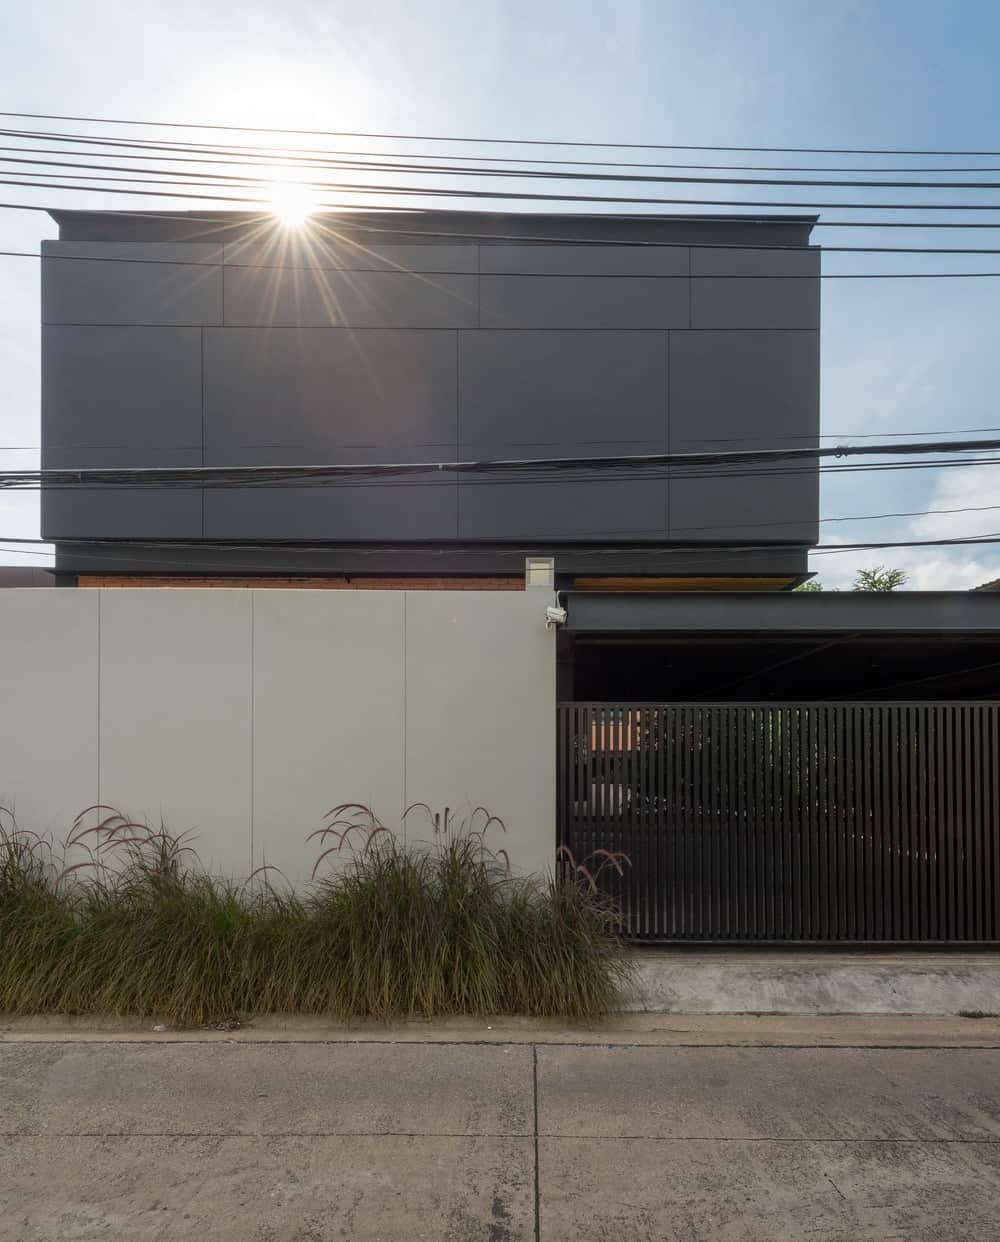 The house has simple white, black and gray tones adorned with a row of shrubs that bring color to the exteriors.